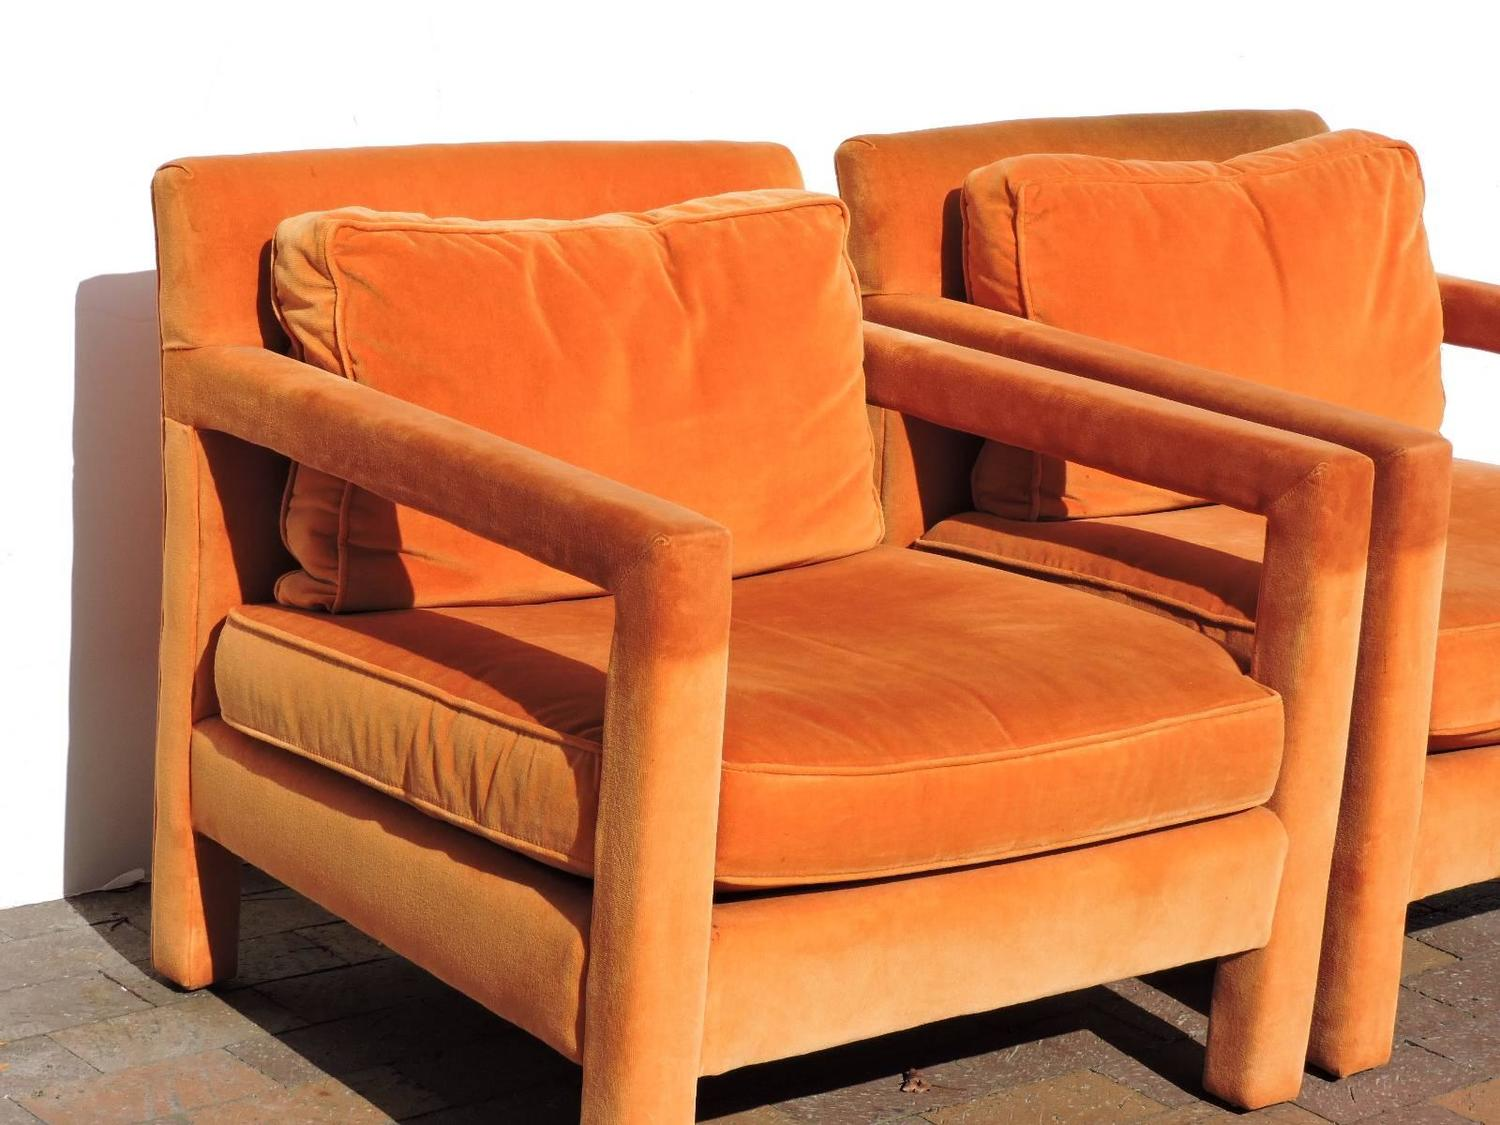 orange parsons chair seat webbing straps upholstered lounge chairs in the style of